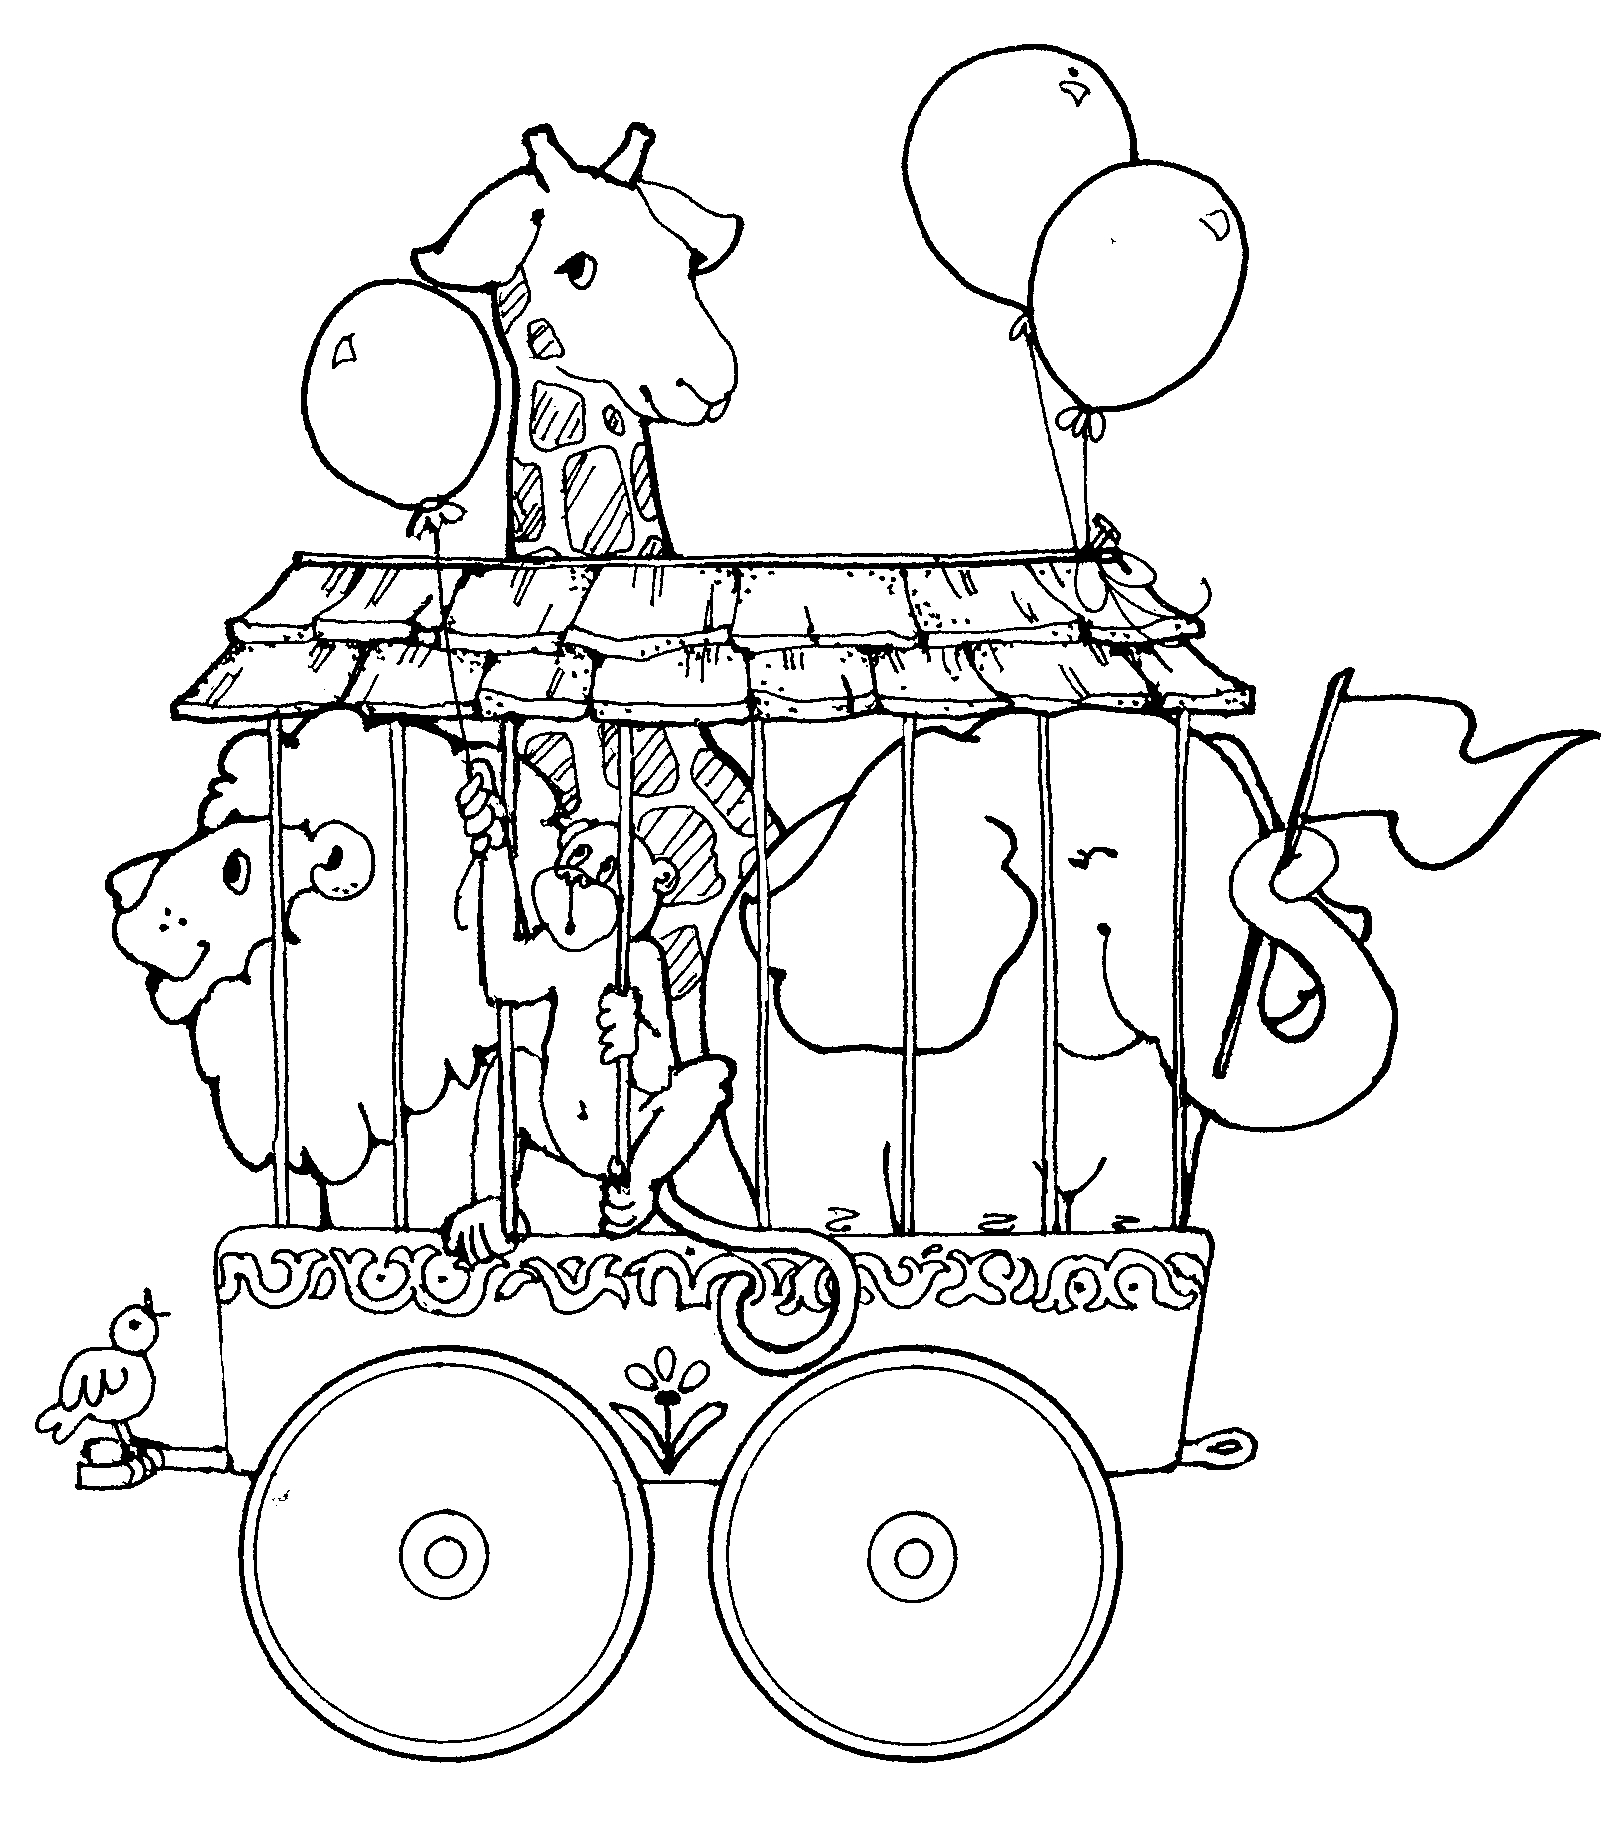 free downloadable circus coloring pages - photo#31